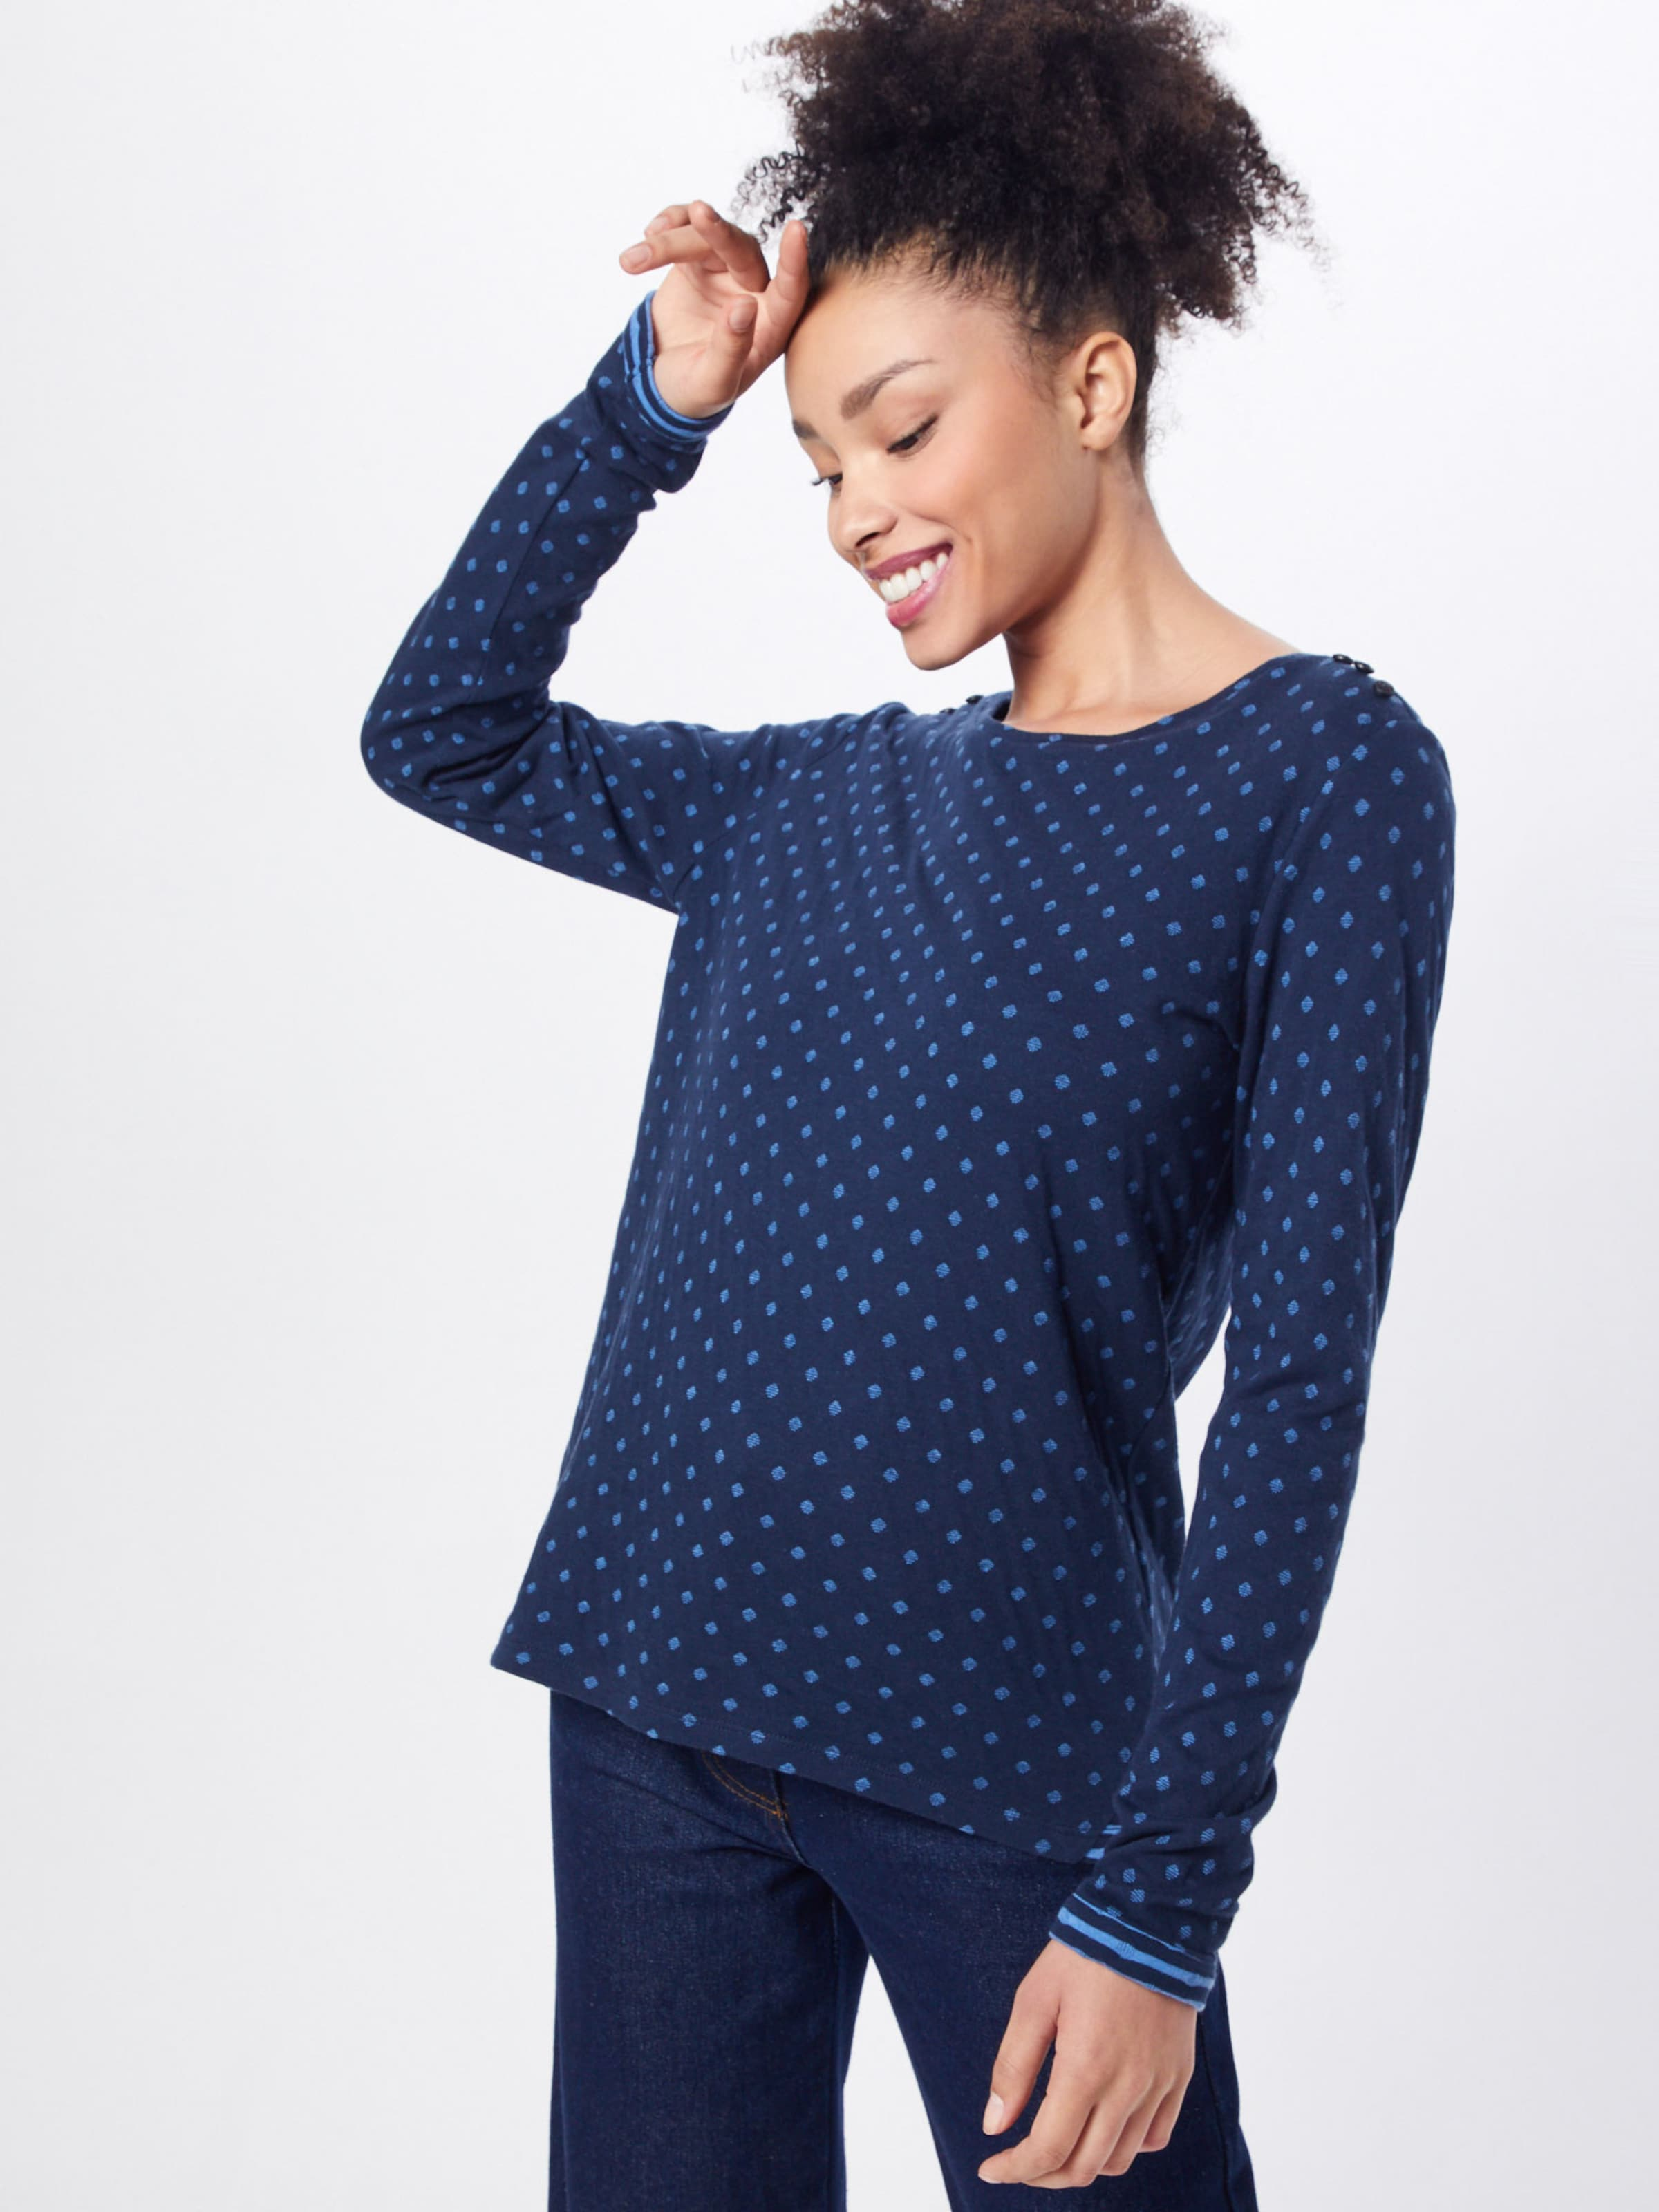 Edc Shirt 'noos' By Esprit In Navy Rj4L5q3A